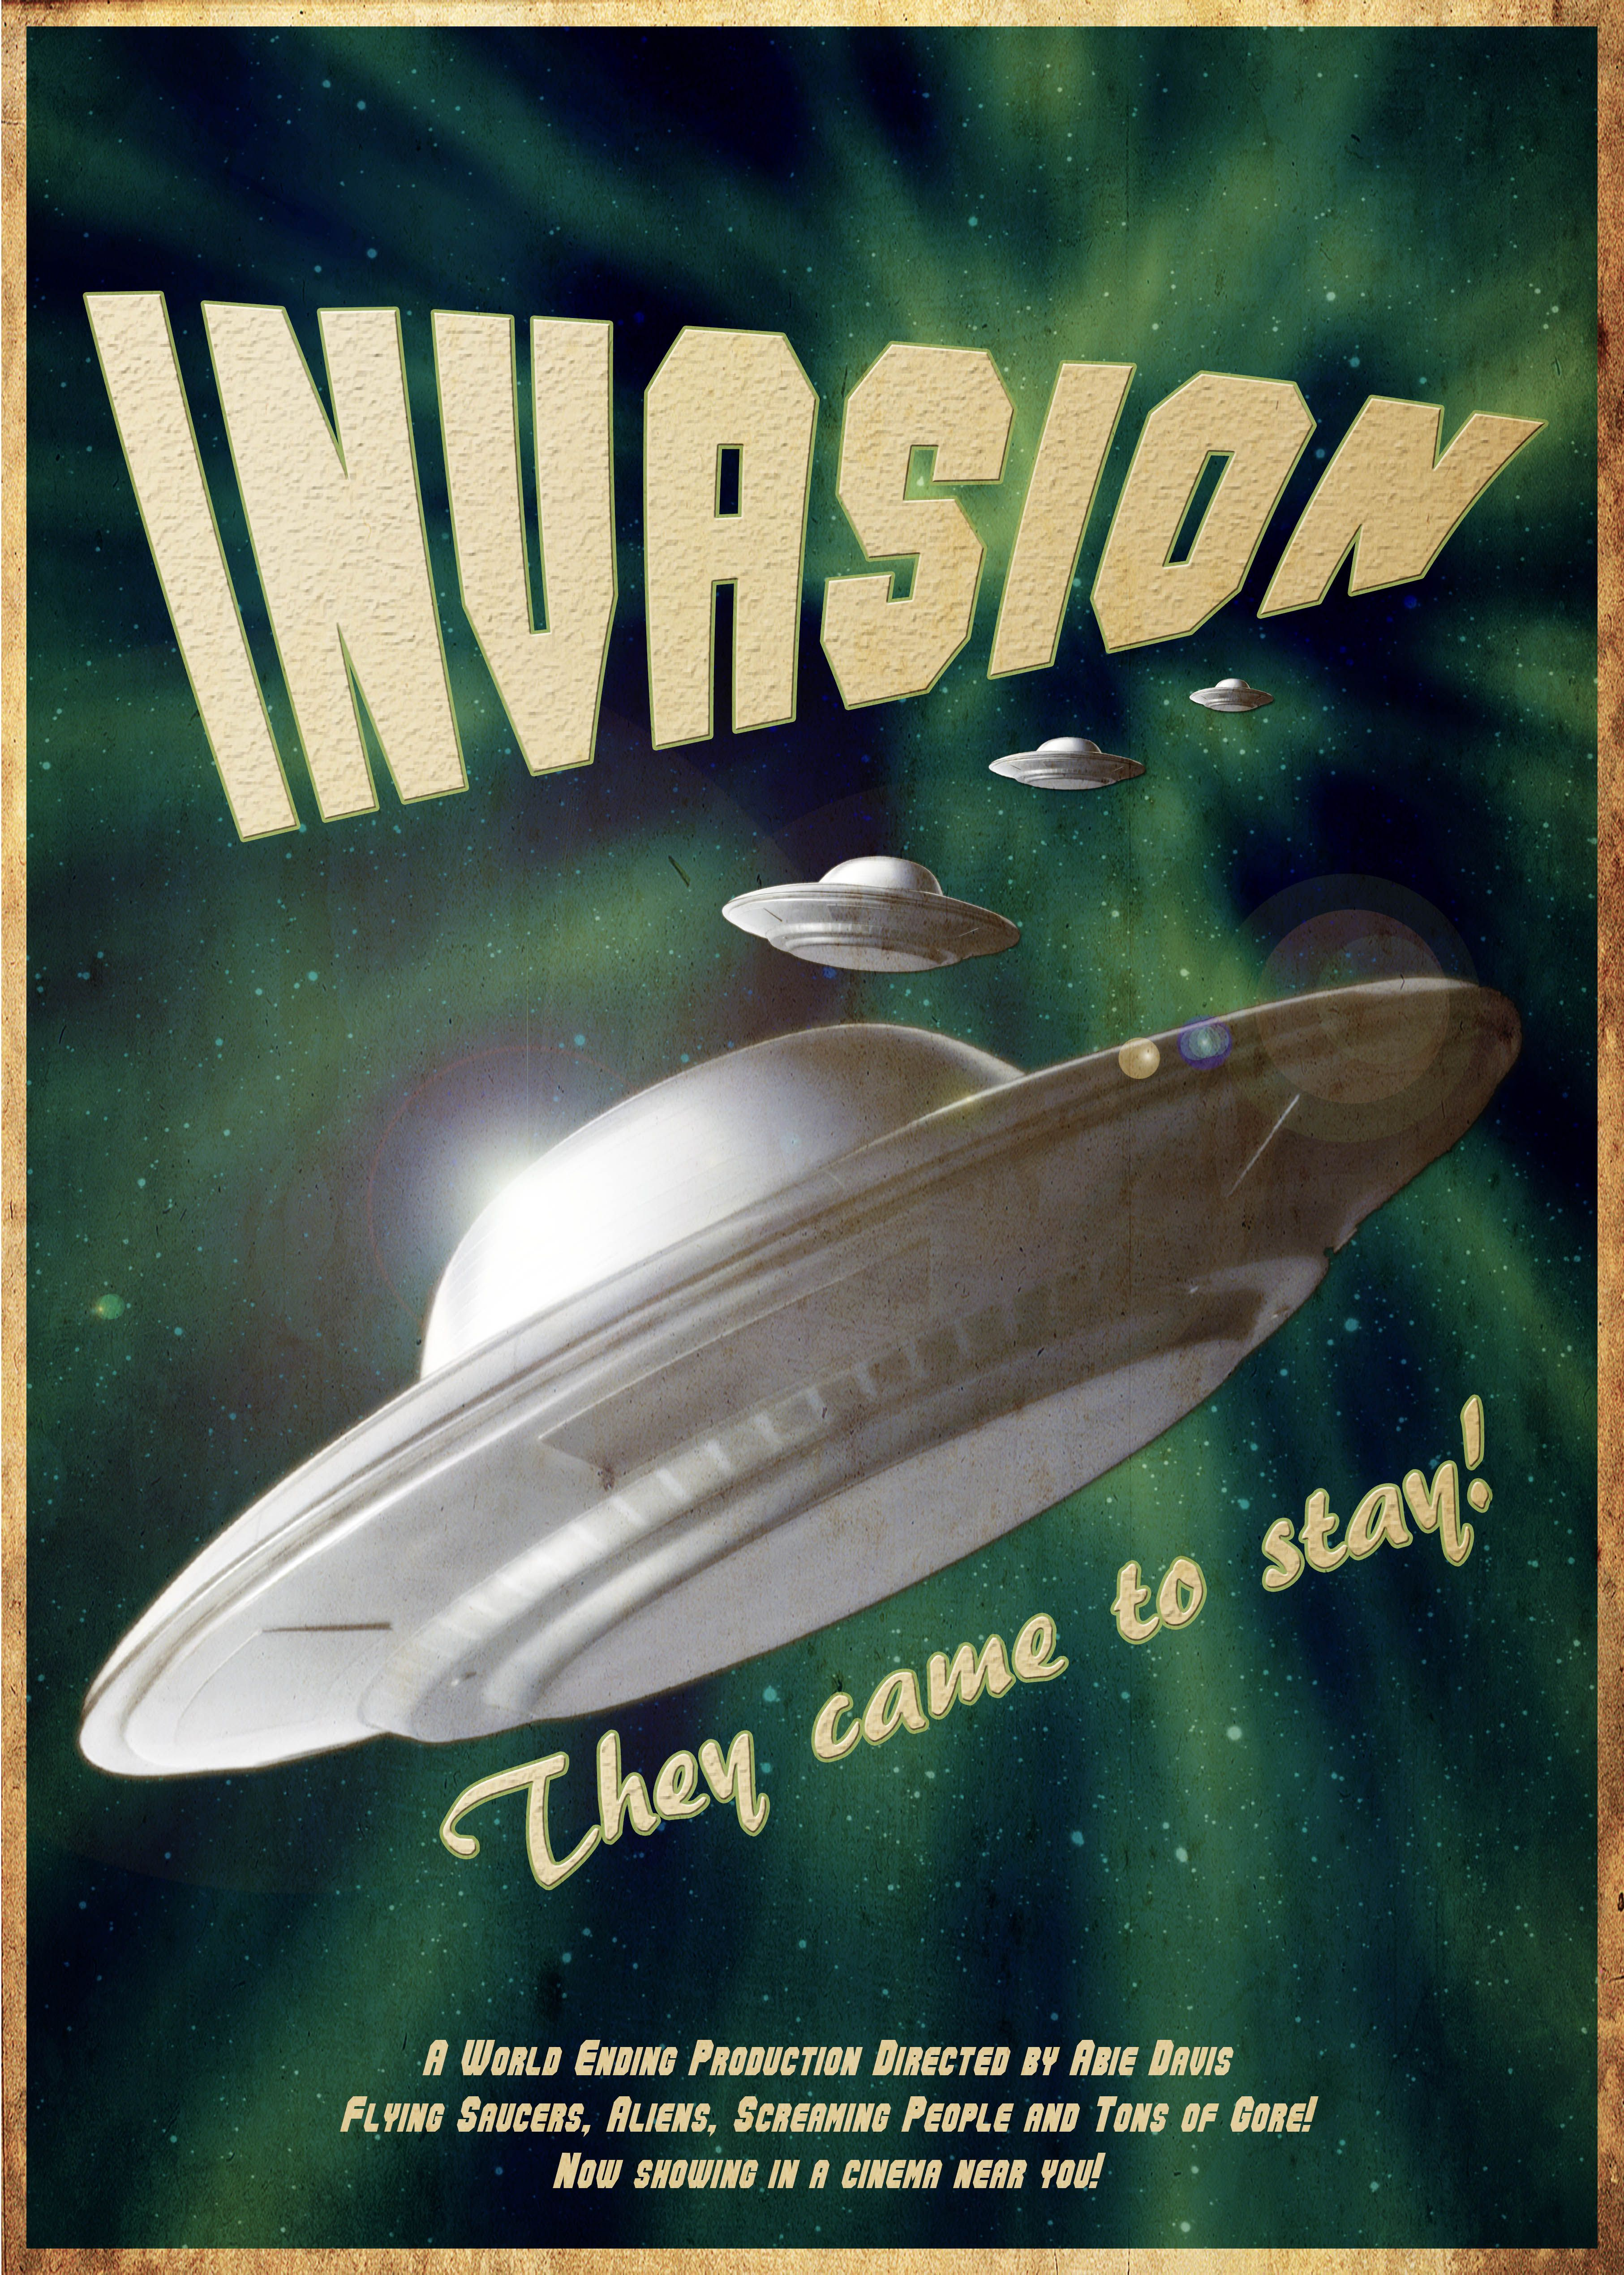 UFO-Invasion-Vintage-Sci-Fi-Poster-by-Abie-Davis-The-Minion ...